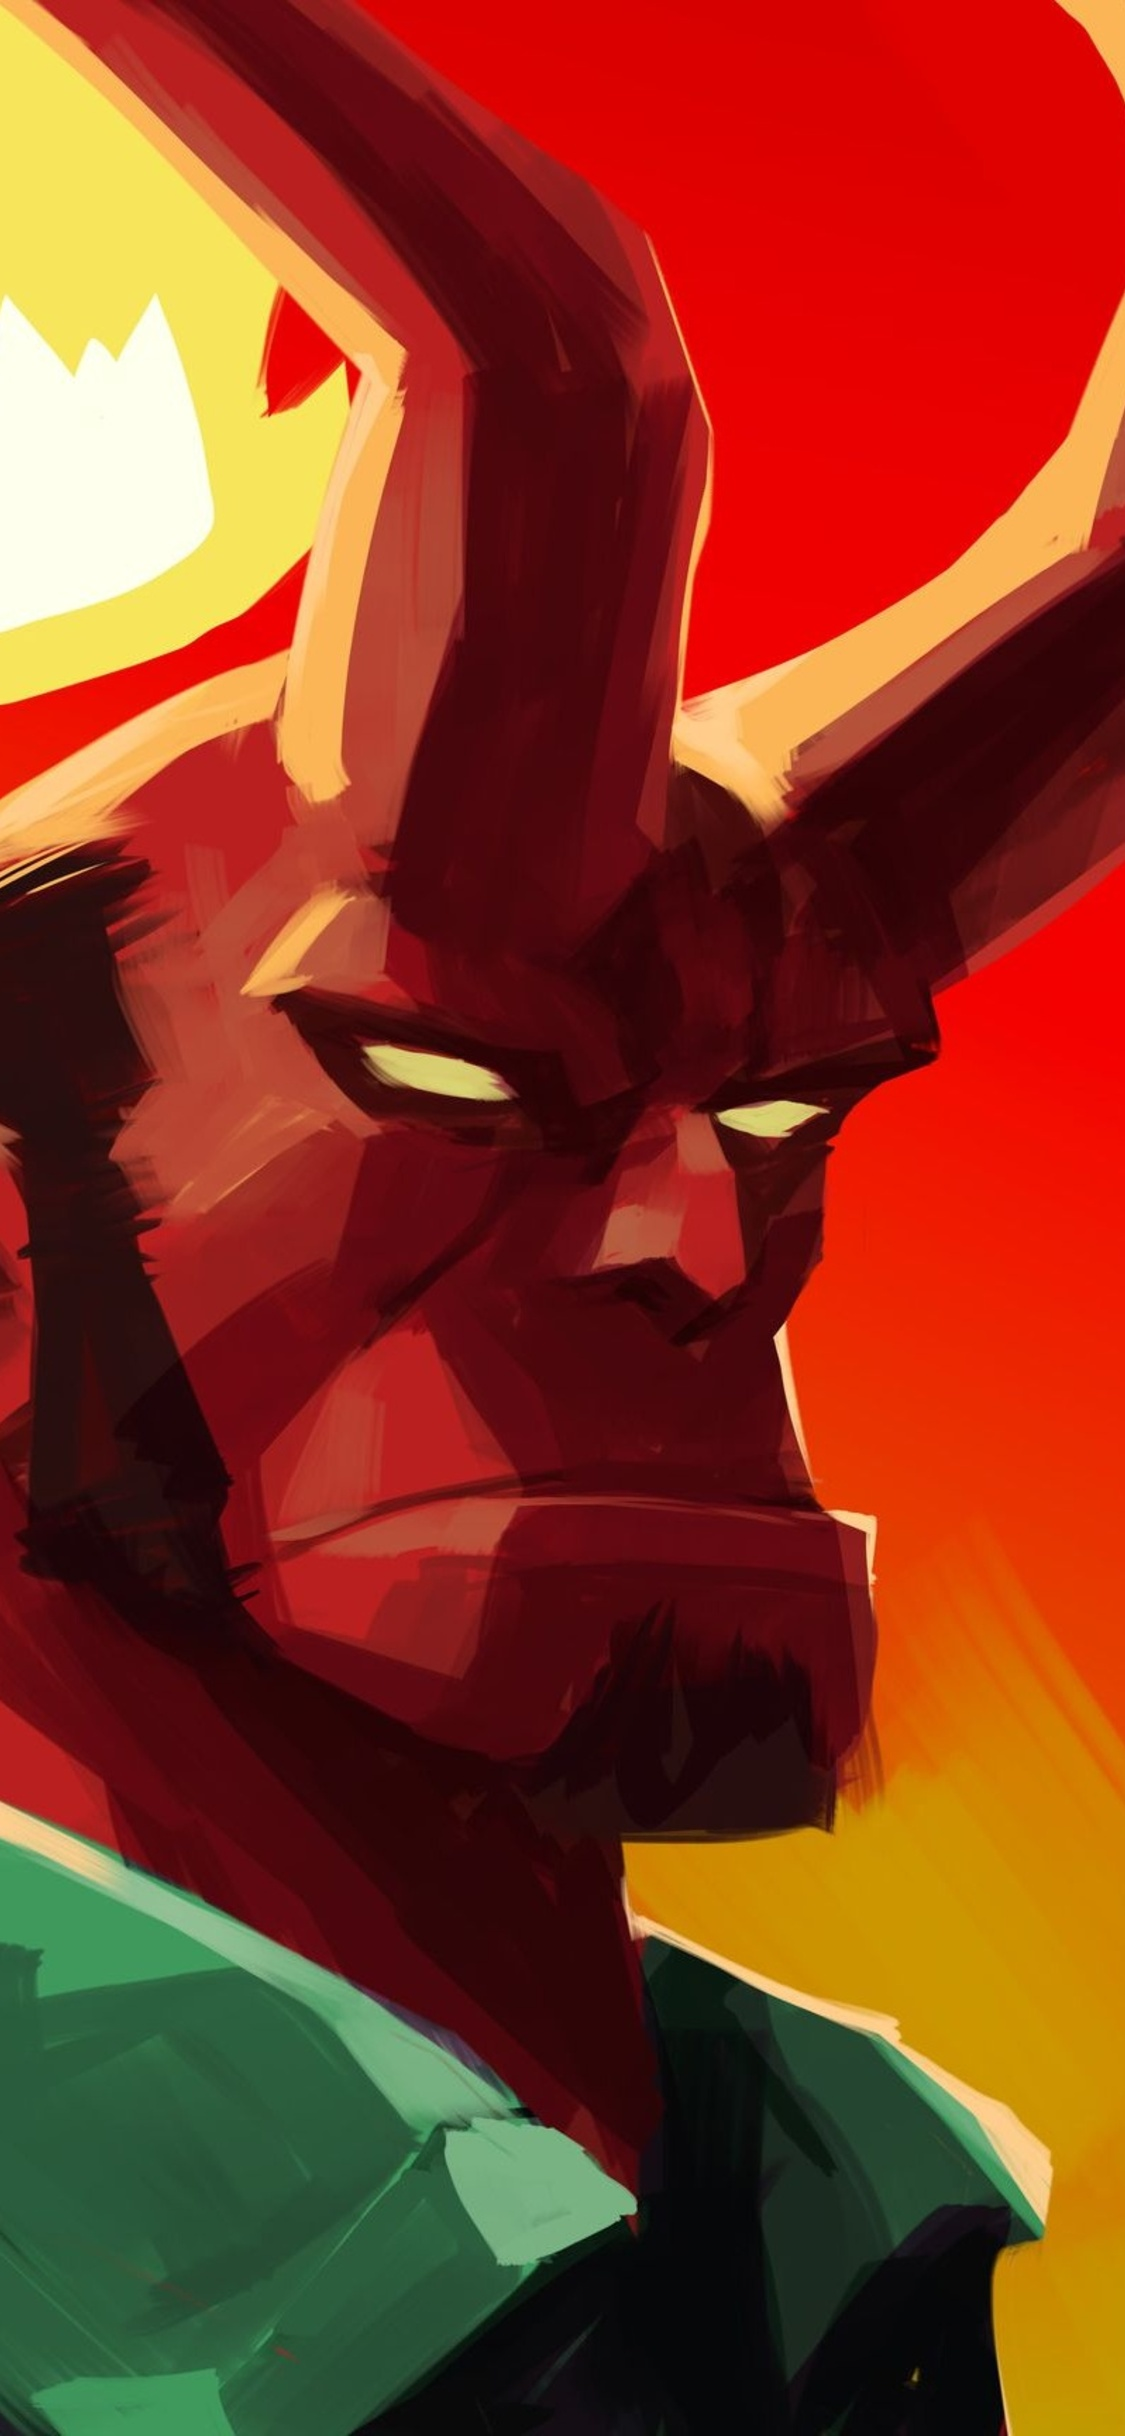 1125x2436 Hellboy Art Iphone Xs Iphone 10 Iphone X Hd 4k Wallpapers